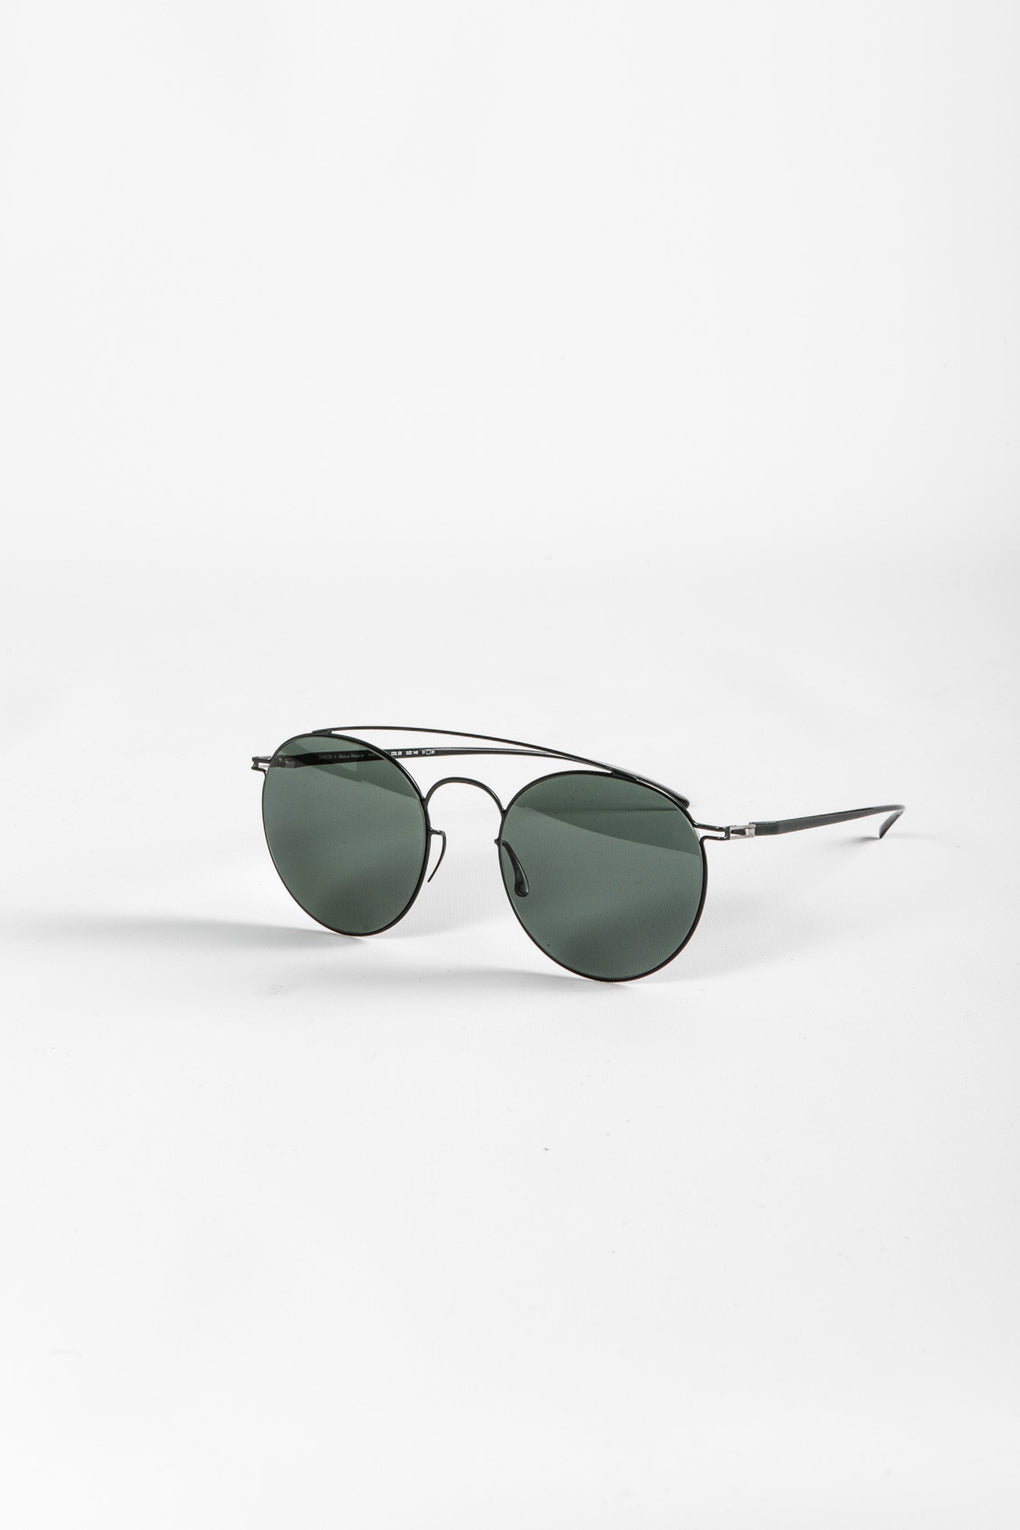 mykita darkgreen sunglasses-idun-saint paul-aviators